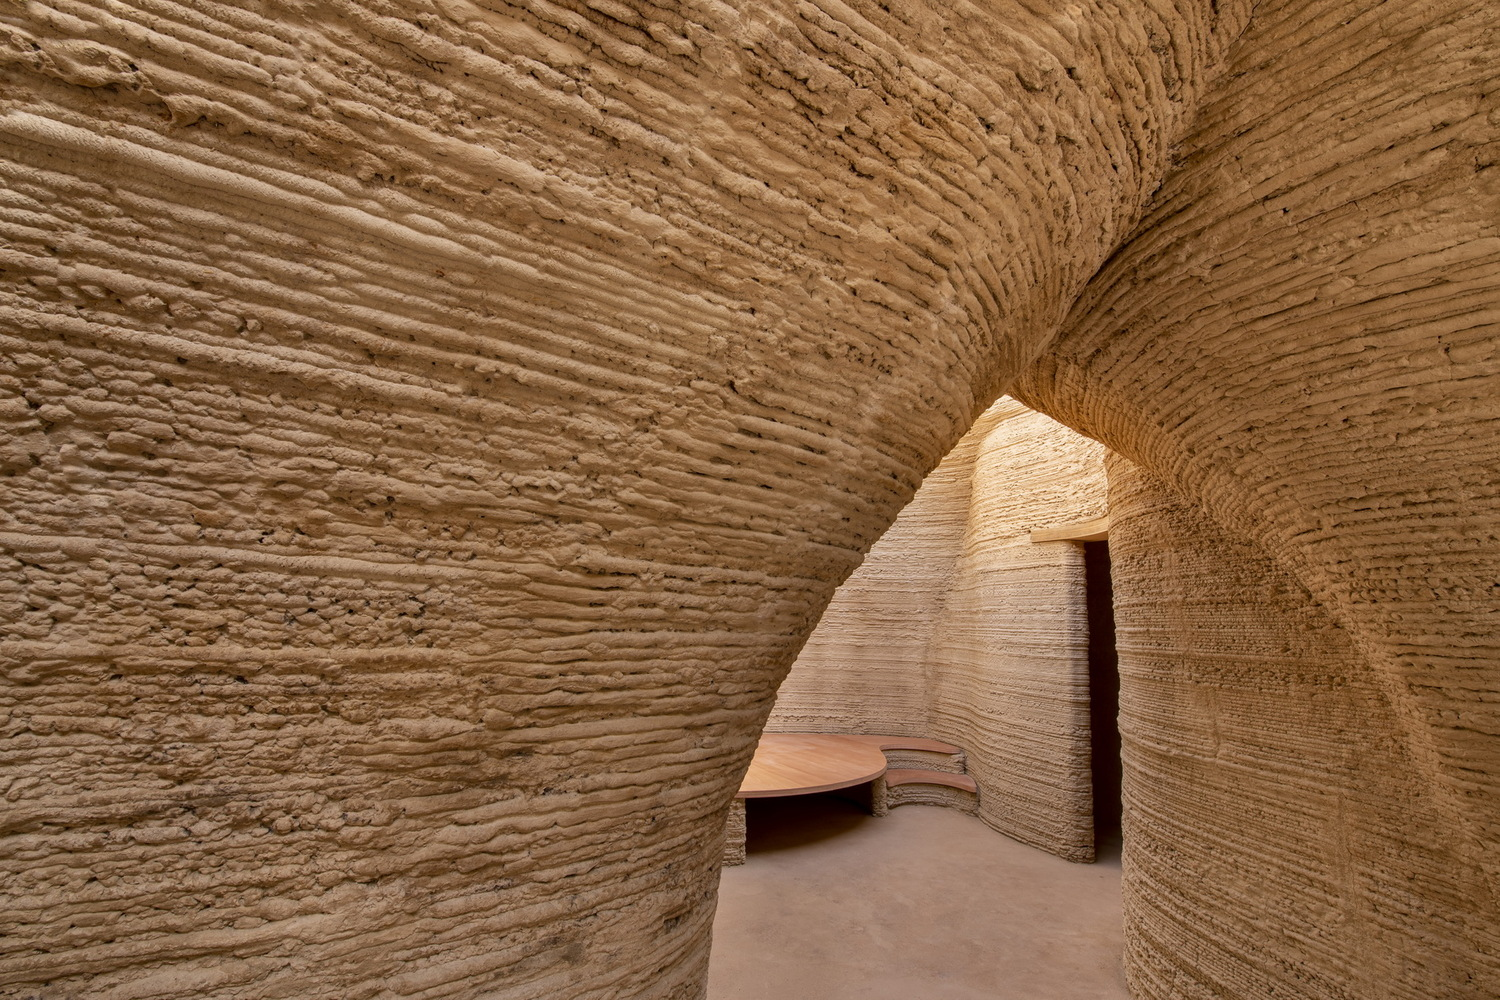 19_TECLA_©Iago_Corazza_passage_detail_from_living_room_to_night_area_low